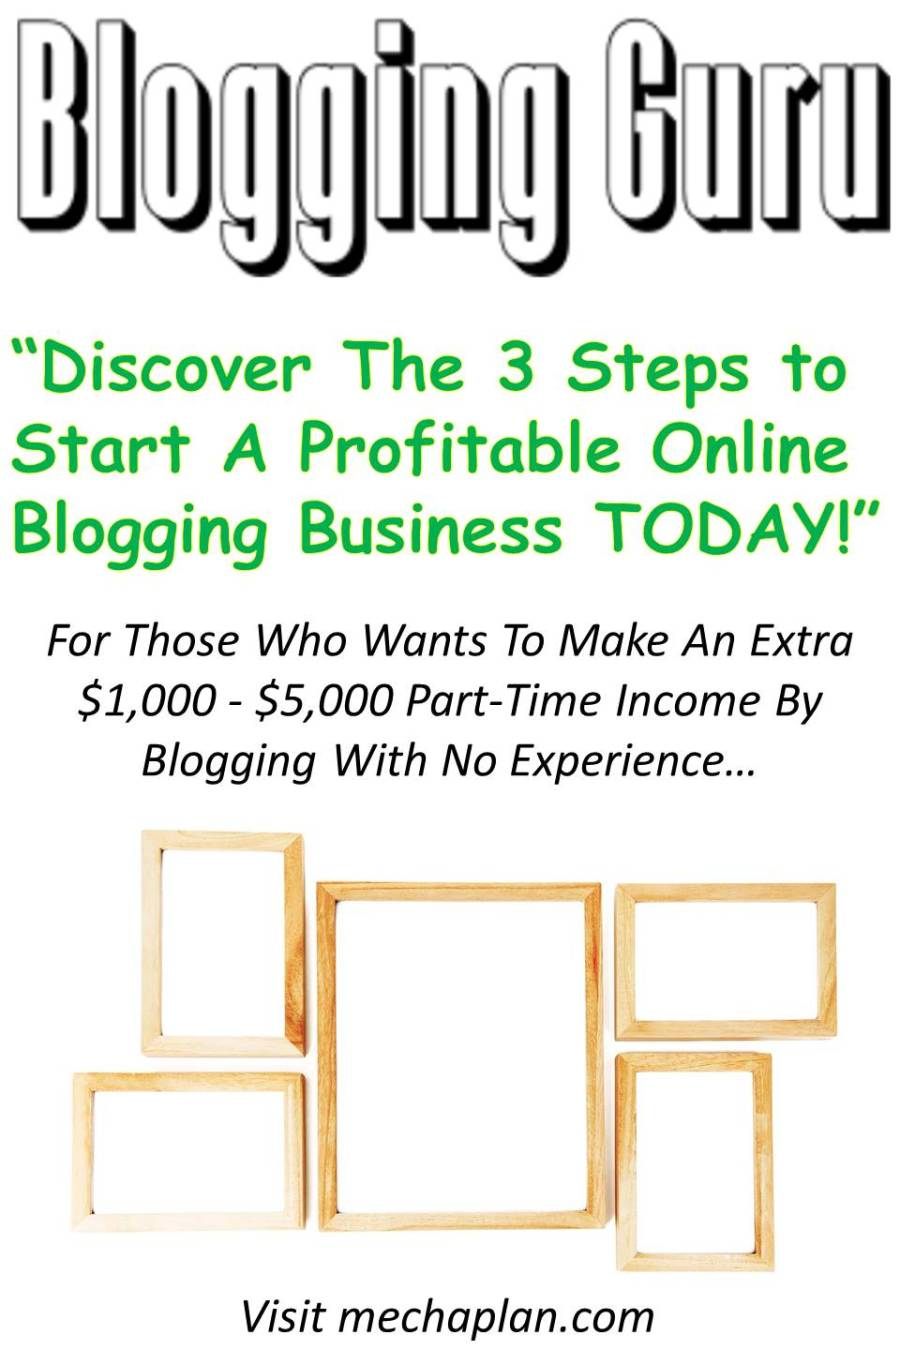 Discover The 3 Steps to Start A Profitable Online Blogging Business TODAY!